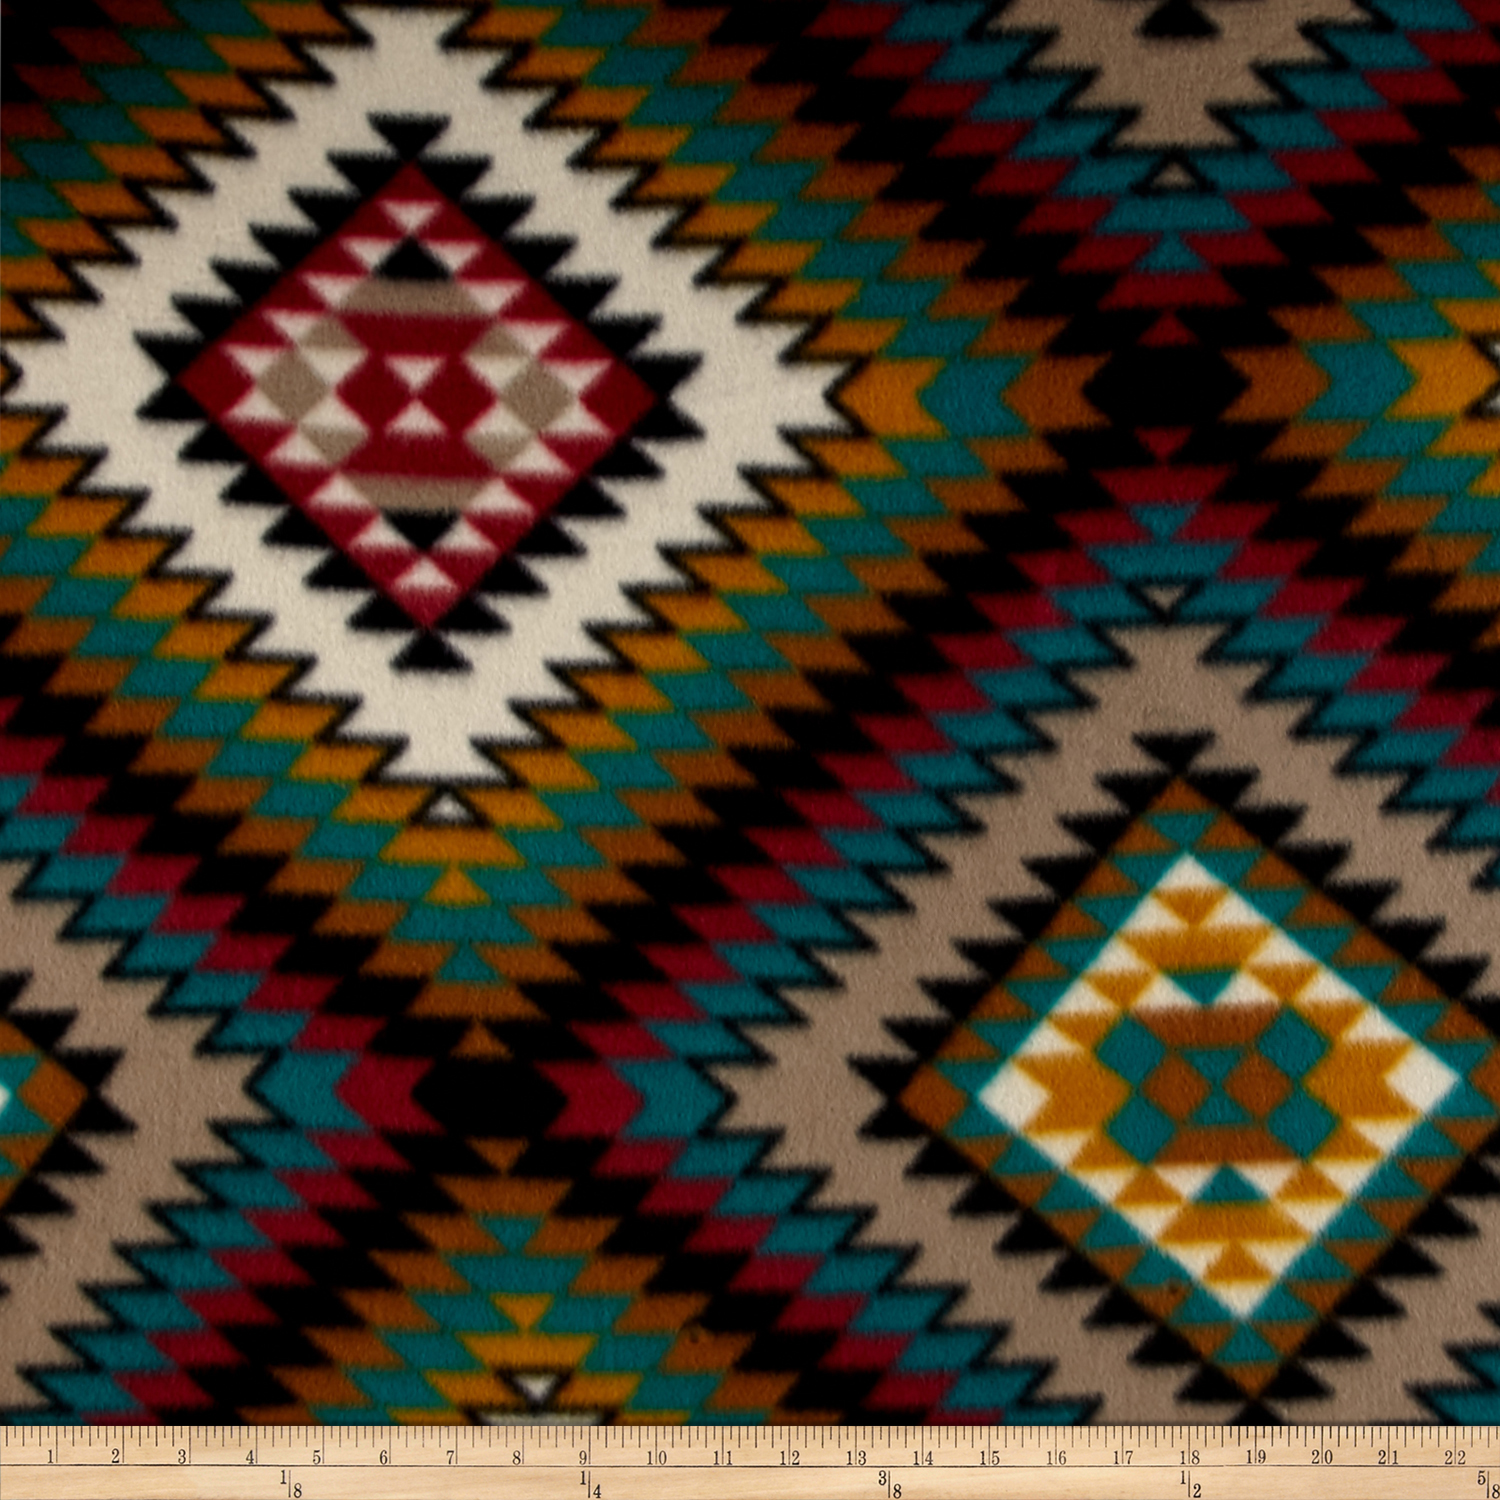 Polar Fleece Indian Blanket Spice Fabric by Newcastle in USA